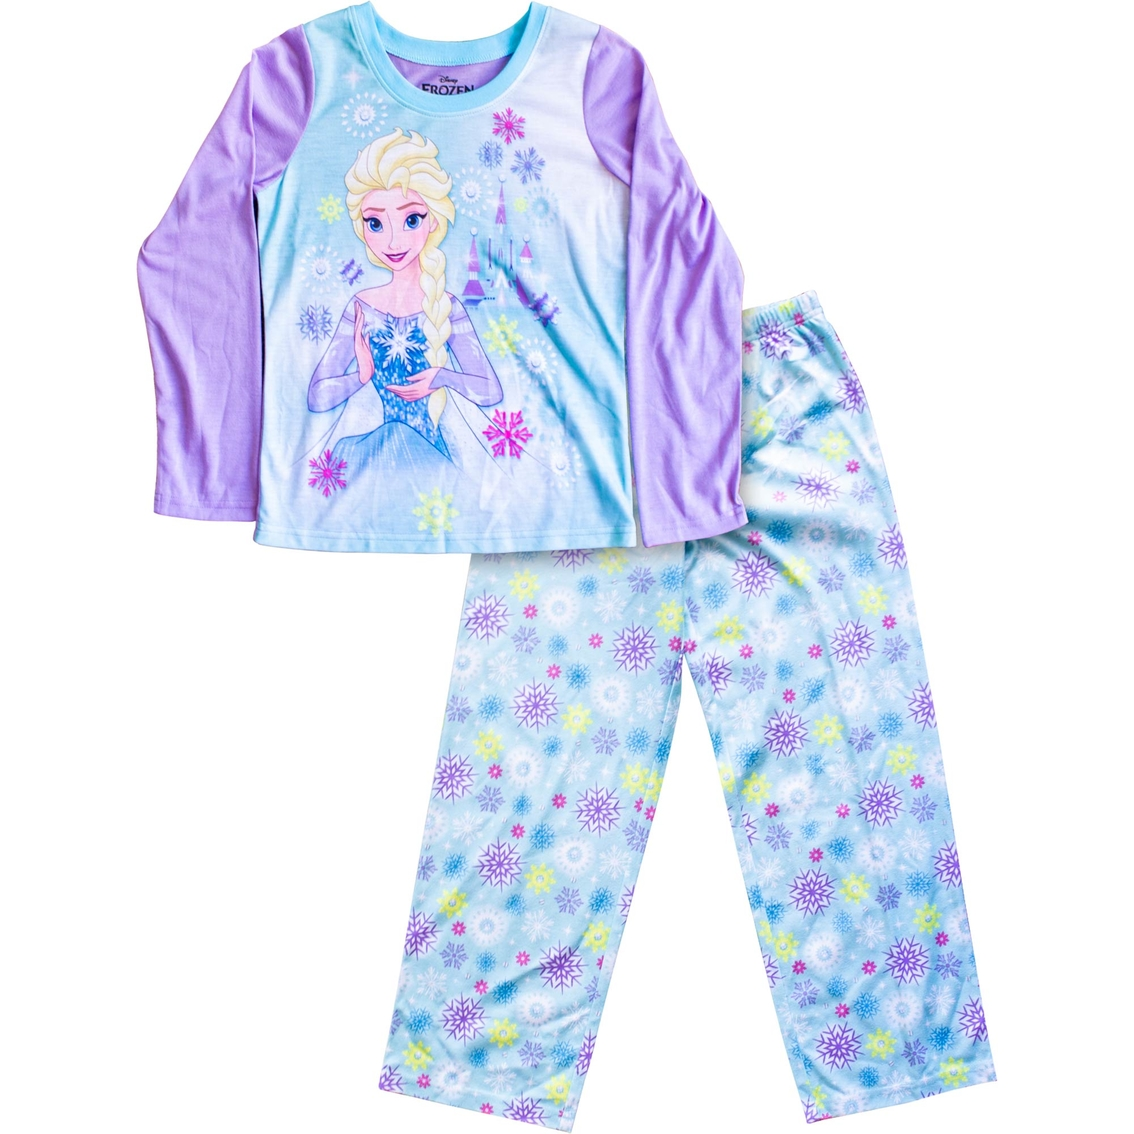 f588168cf Disney Girls Frozen Elsa Leave A Little Sparkle 2 Pc. Pajama Set ...